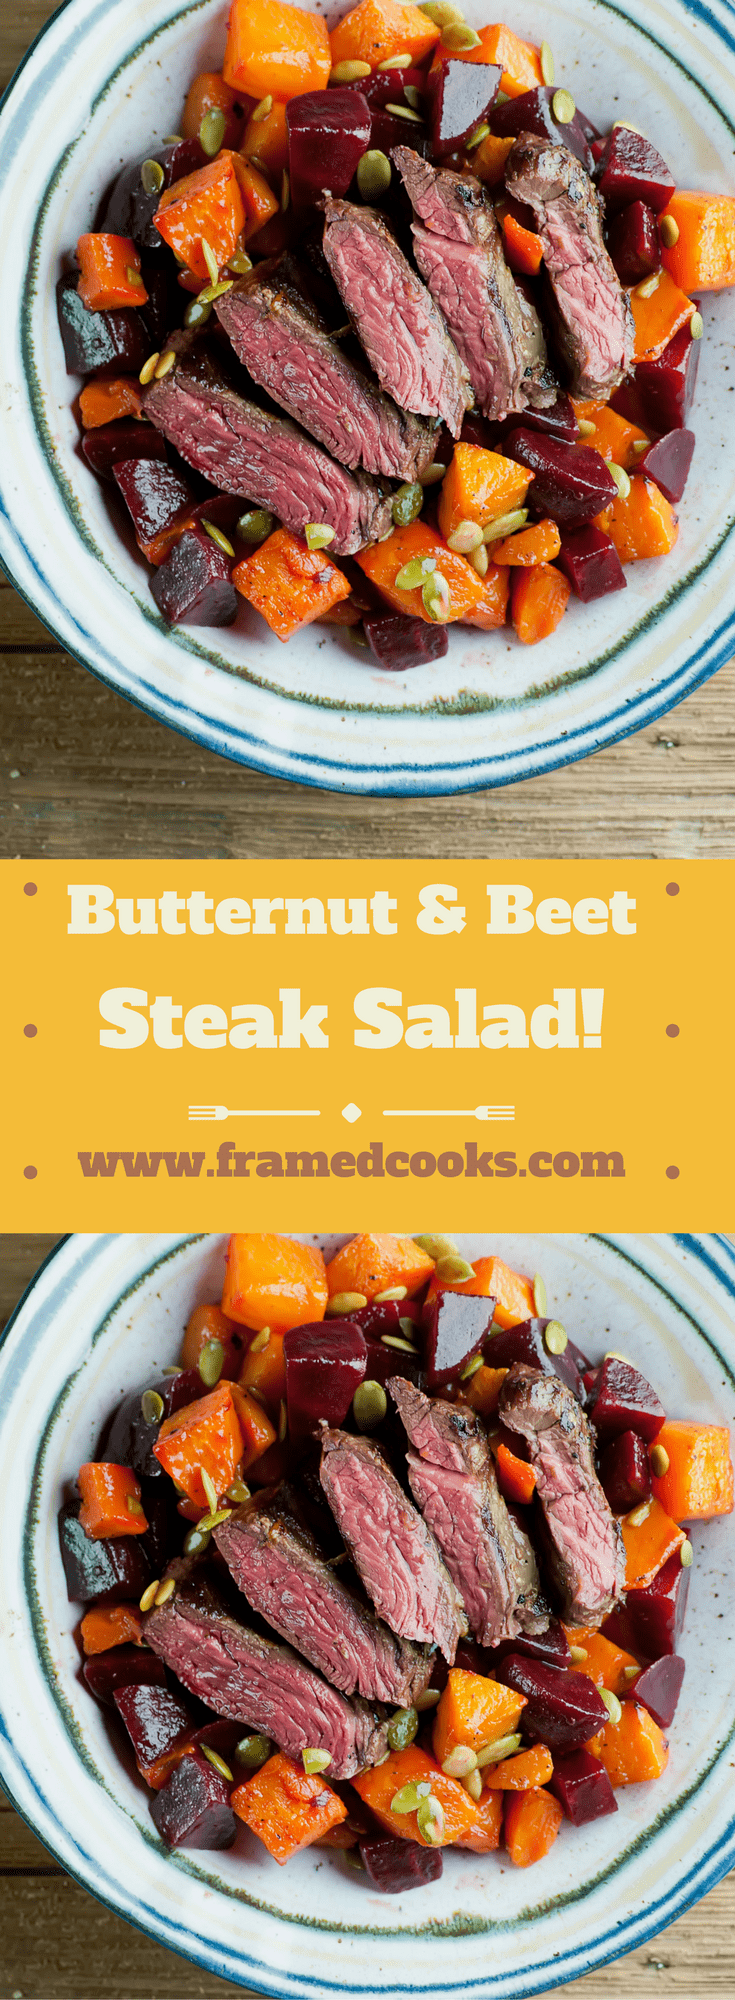 This easy recipe for butternut and beet steak salad is full of hearty fall flavors, perfect for those  early autumn suppers.